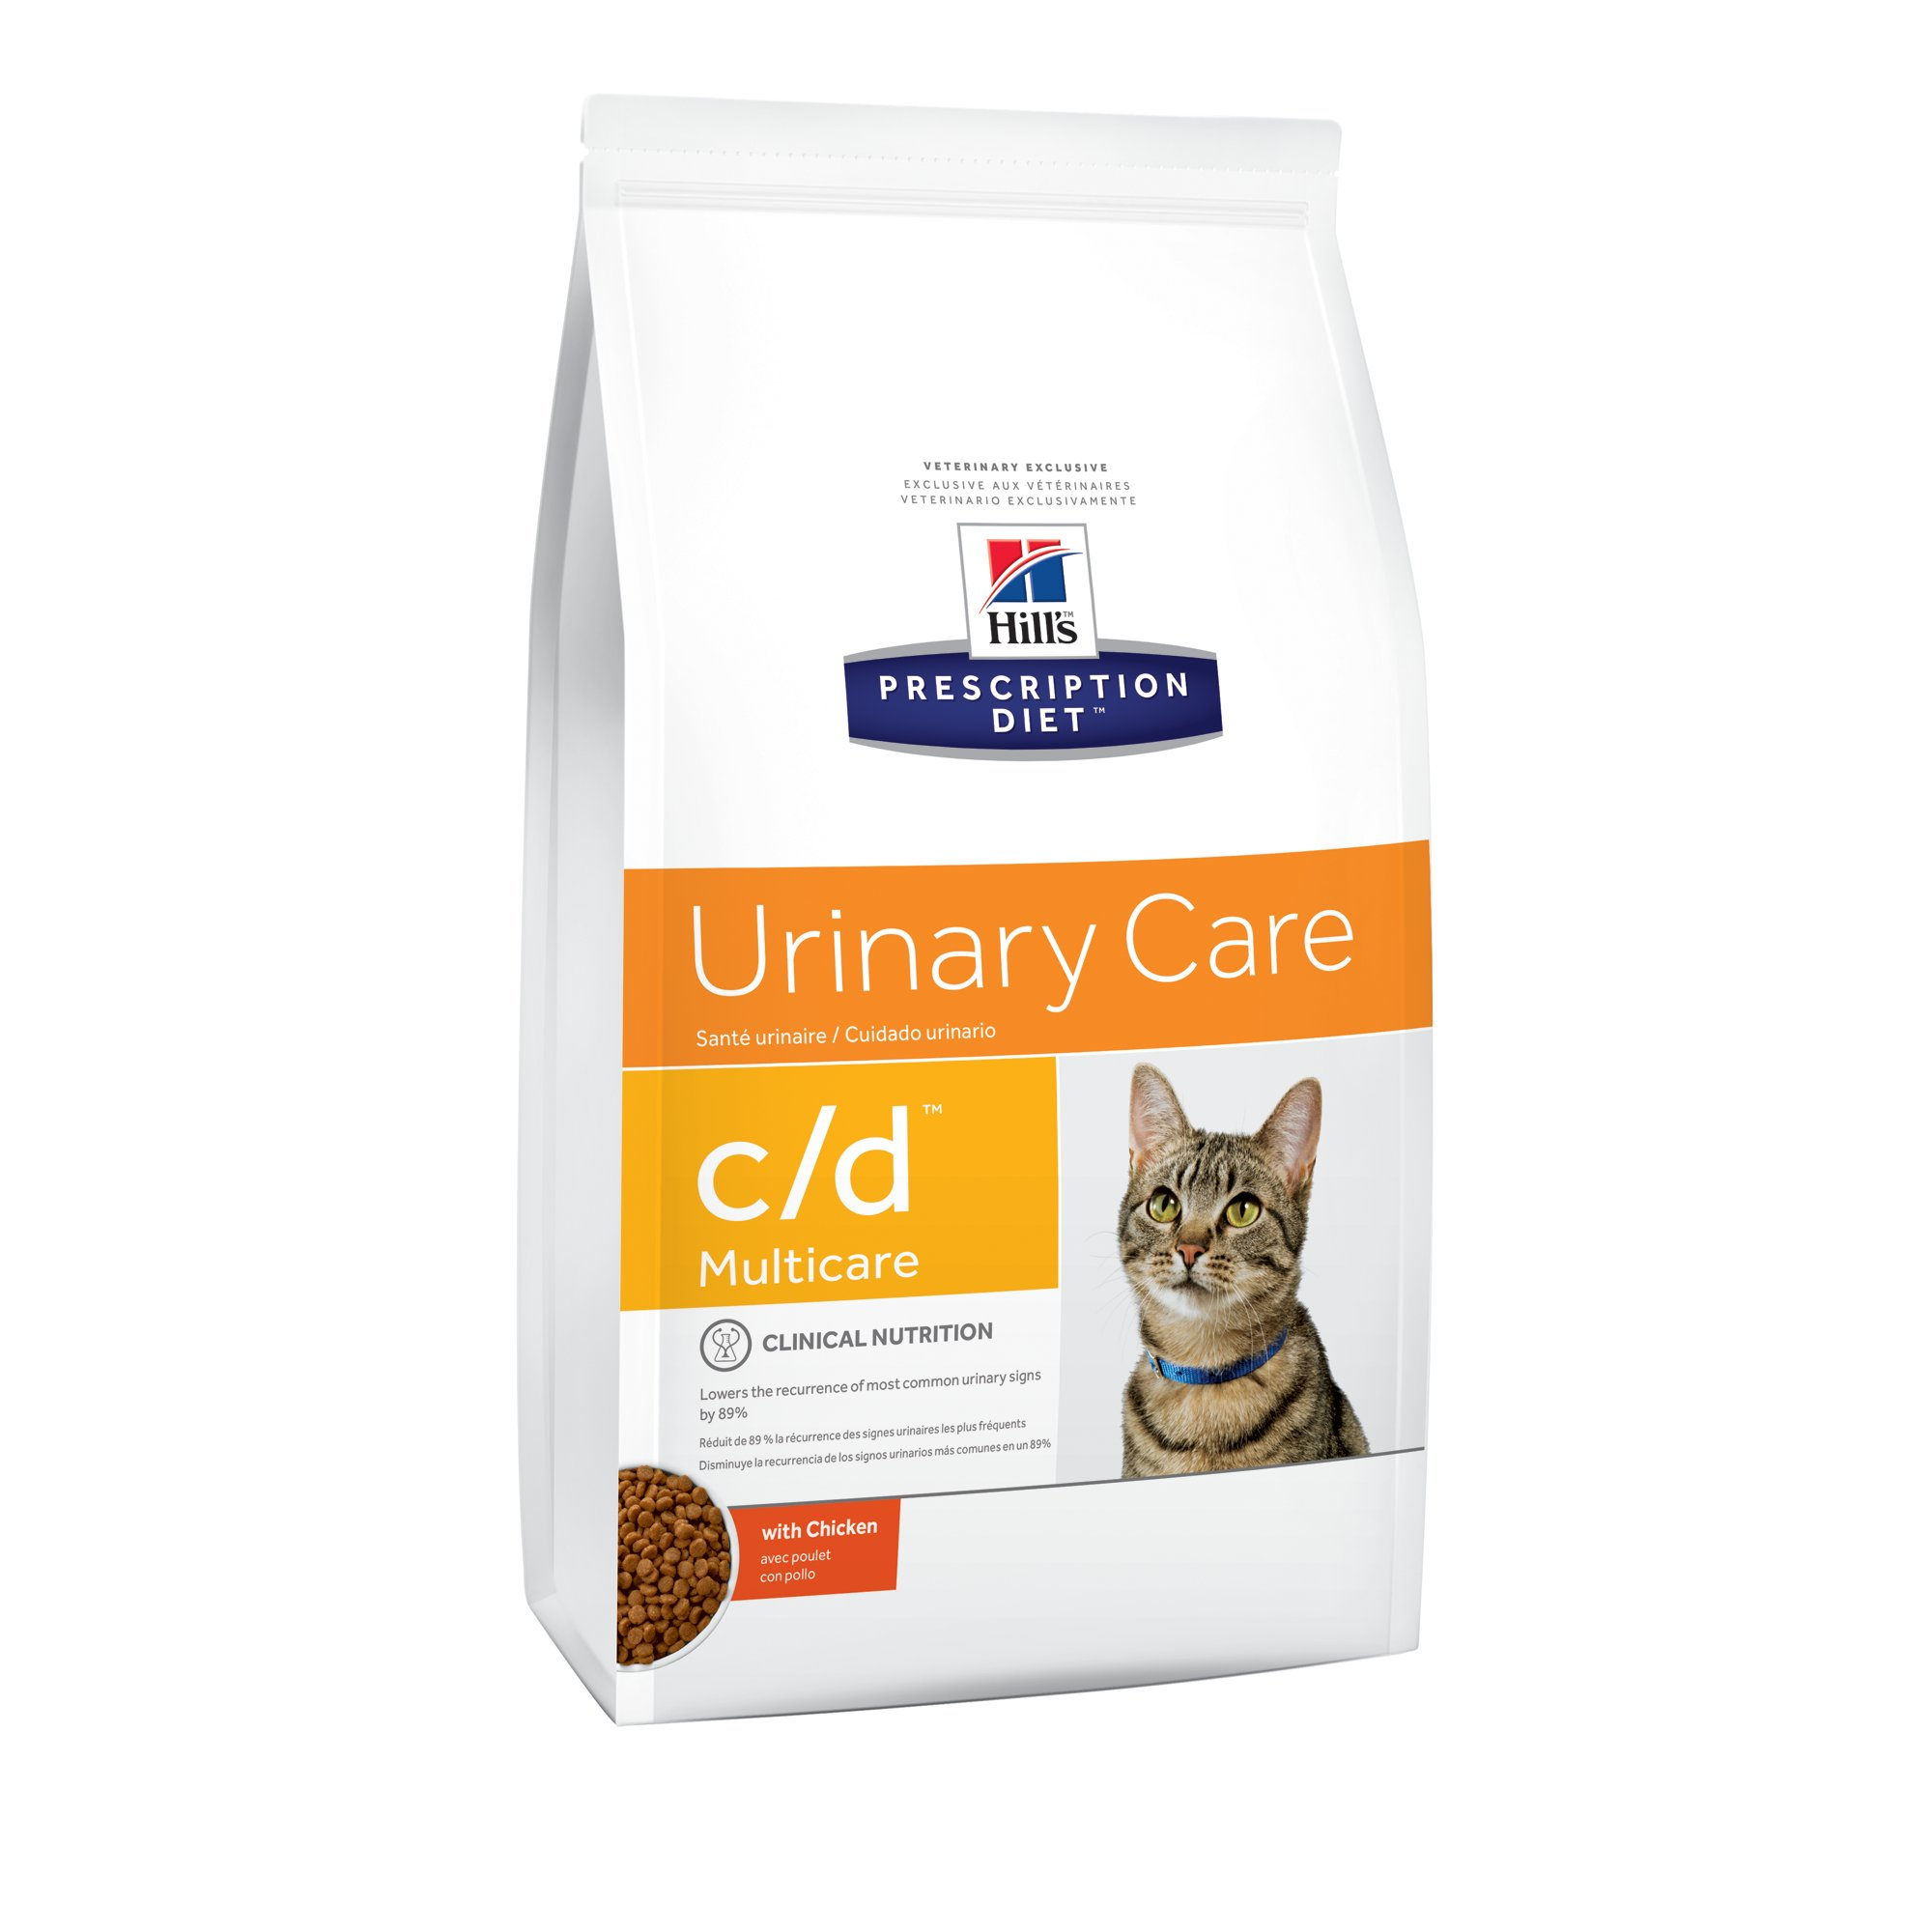 Hills Prescription Urinary Care Cd Cat Food